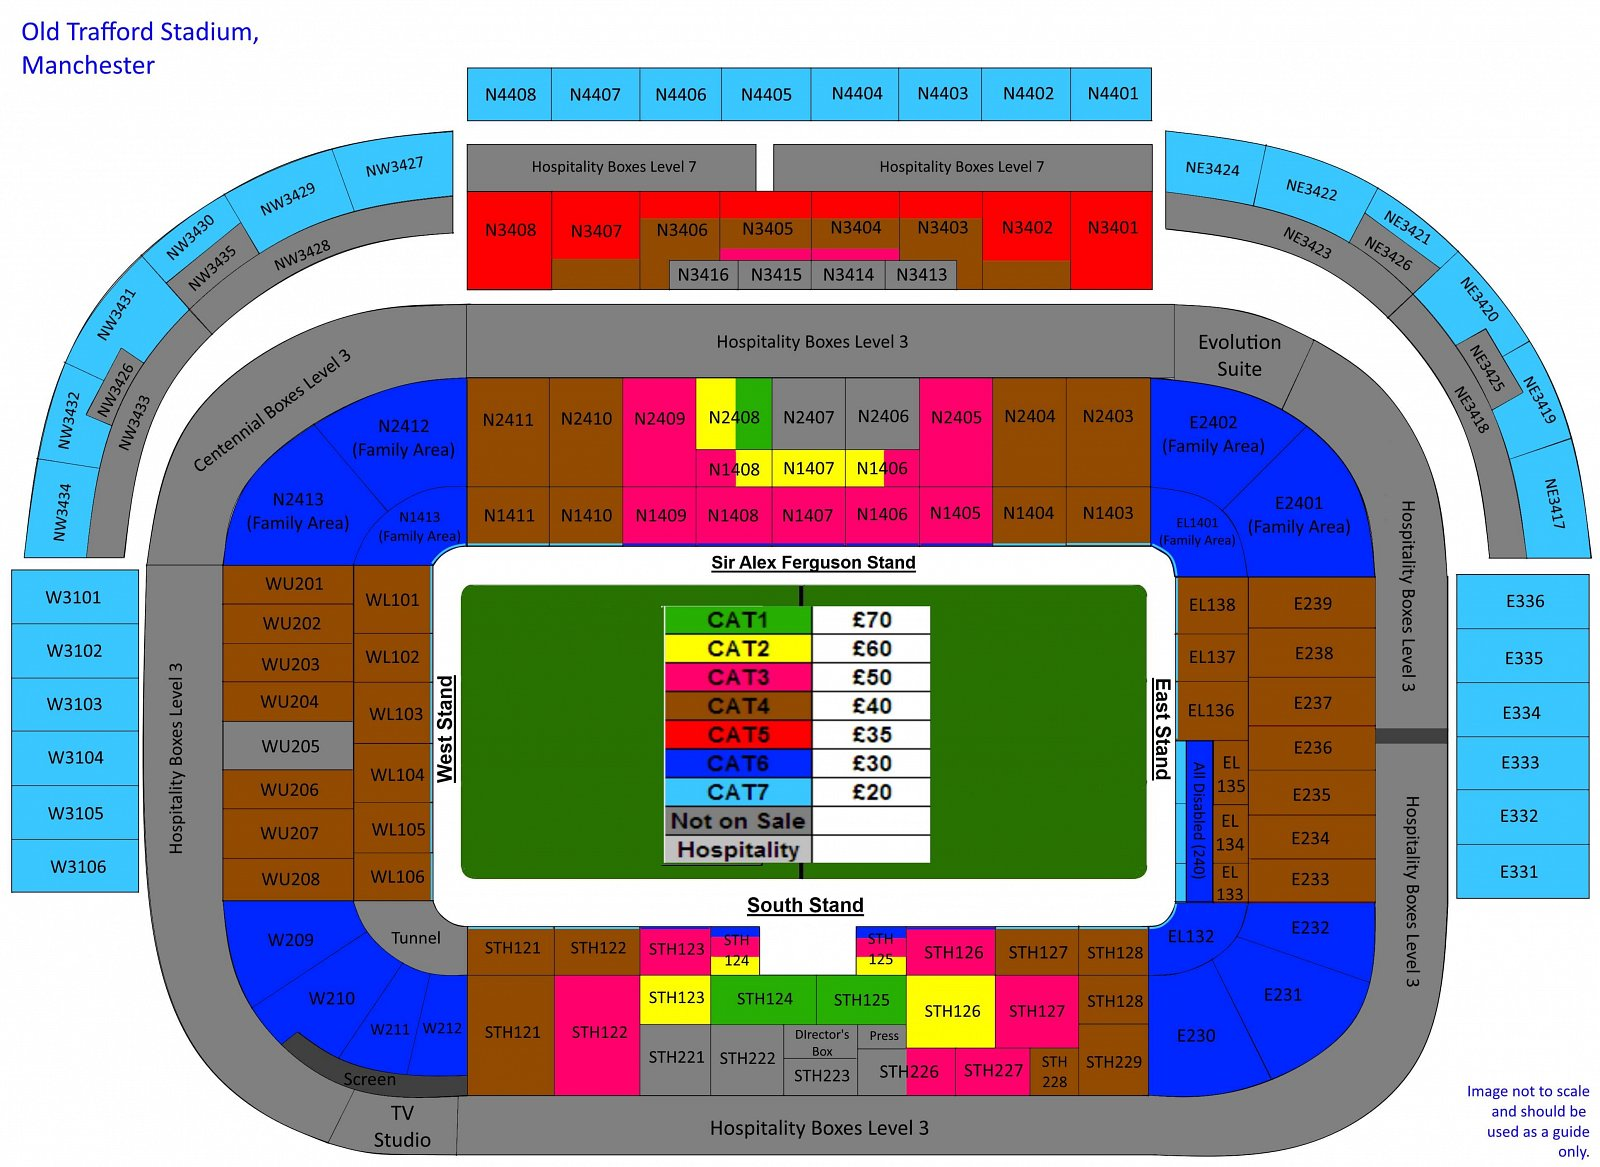 Pin Seating Plan At Old Trafford On Pinterest